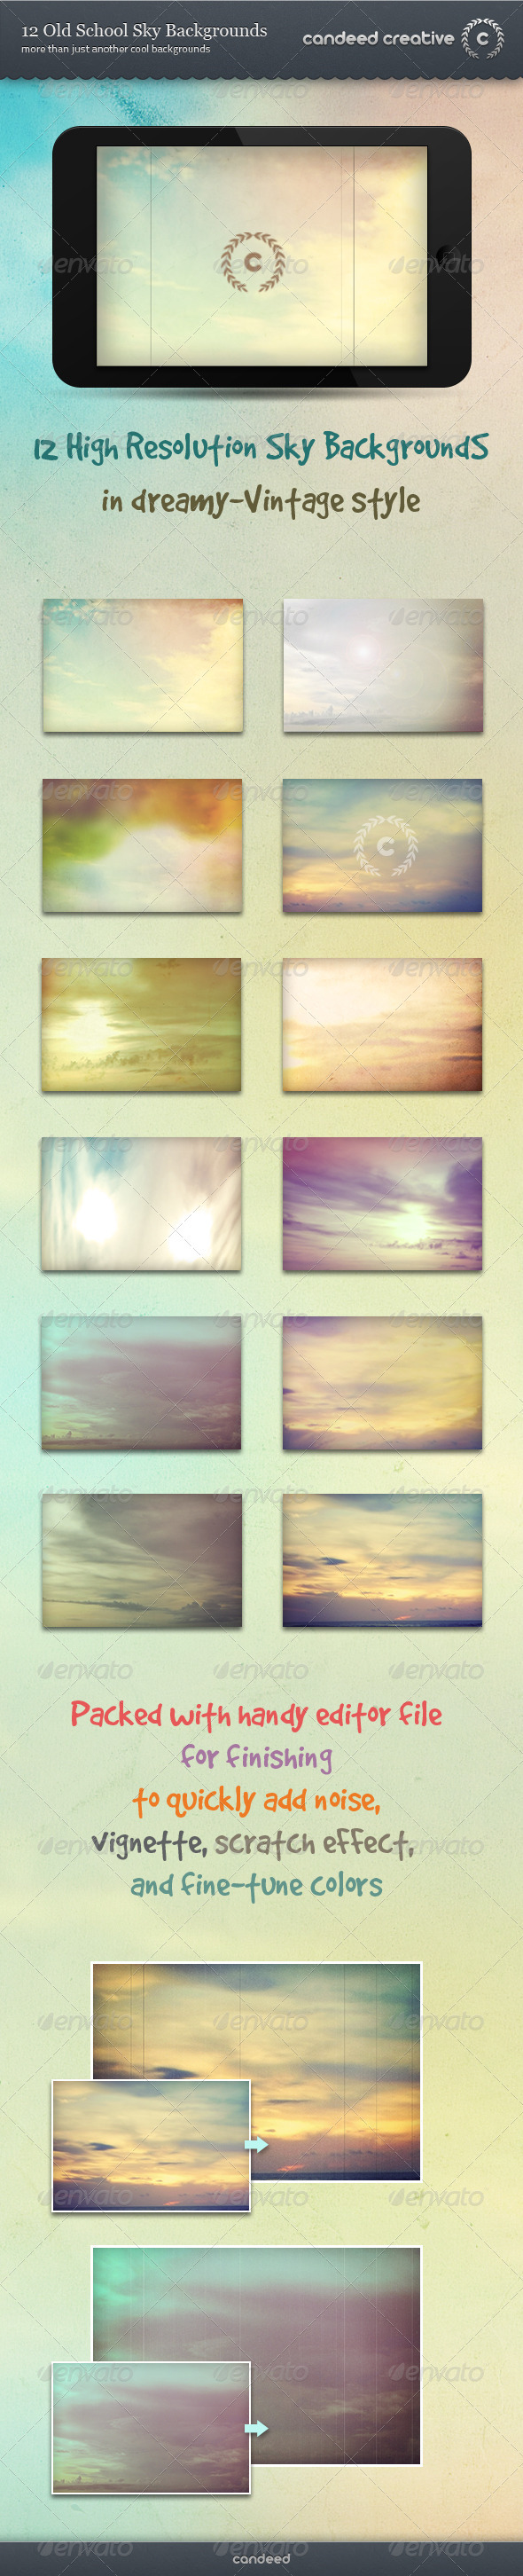 GraphicRiver 12 Old School Sky Backgrounds 3708107